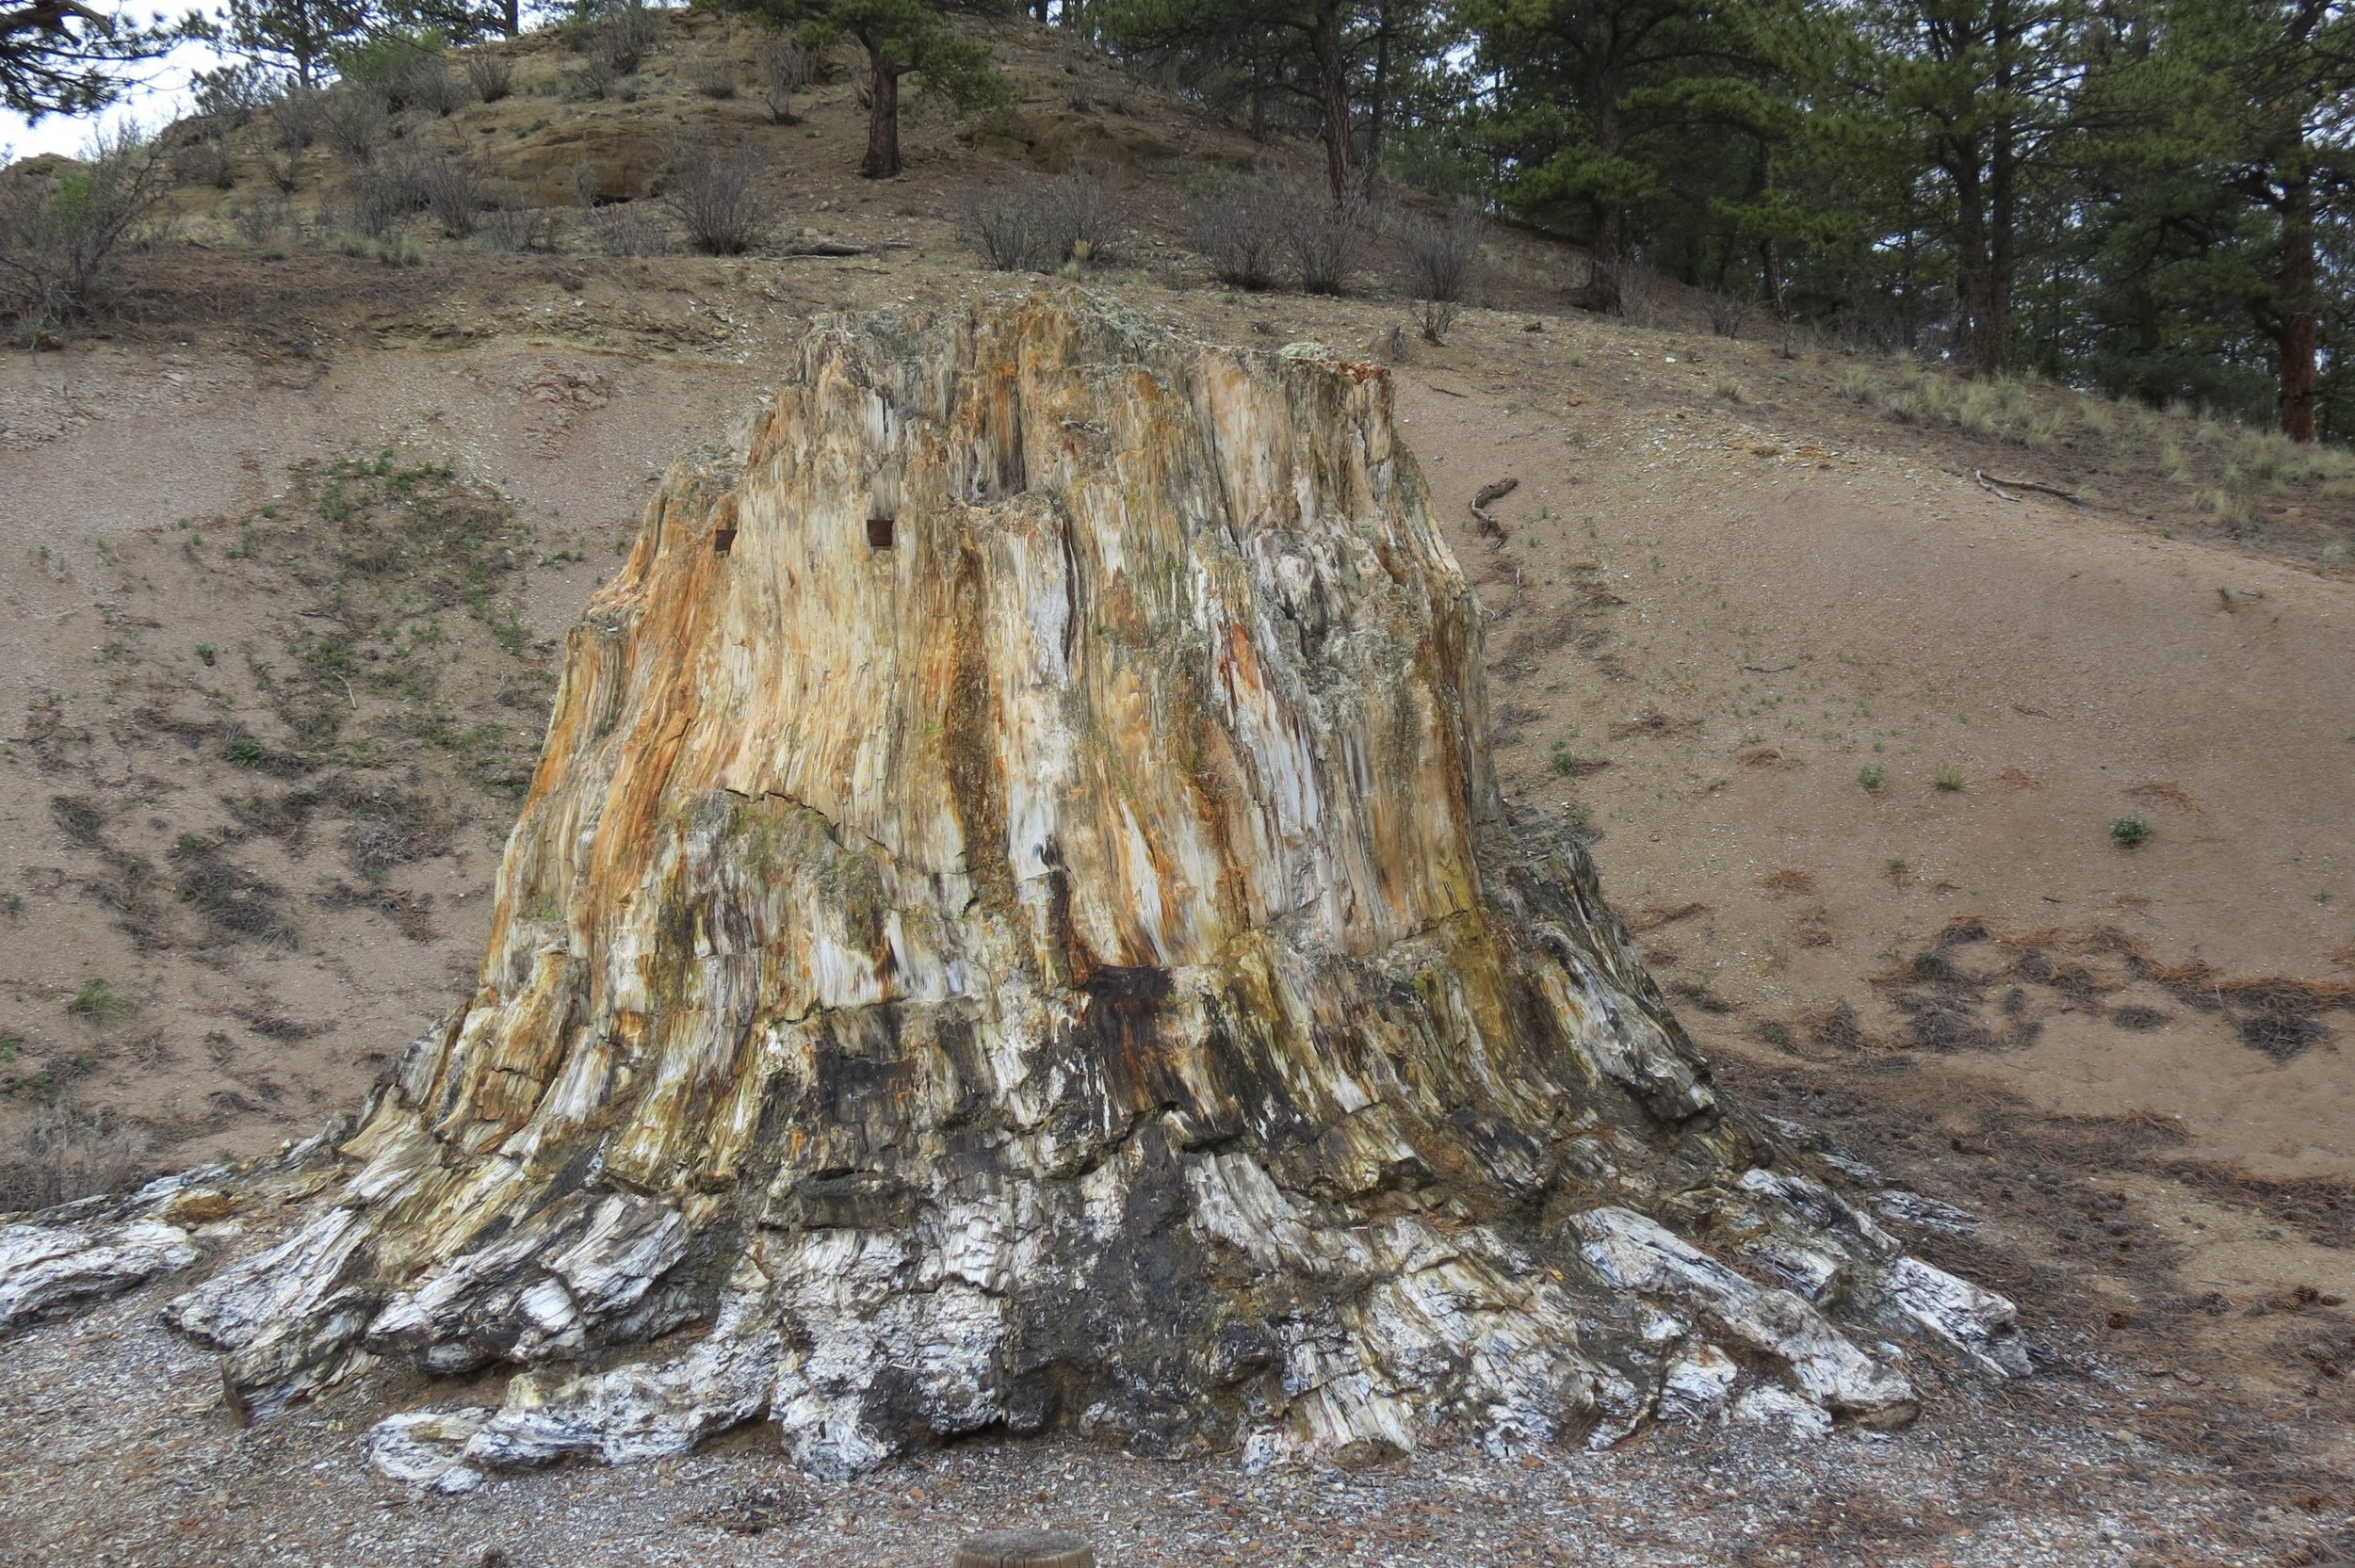 A petrified tree stump at Florissant Fossil Beds National Monument. (There's a little easter egg in this picture too--see if you can find it.) Photo by the author.